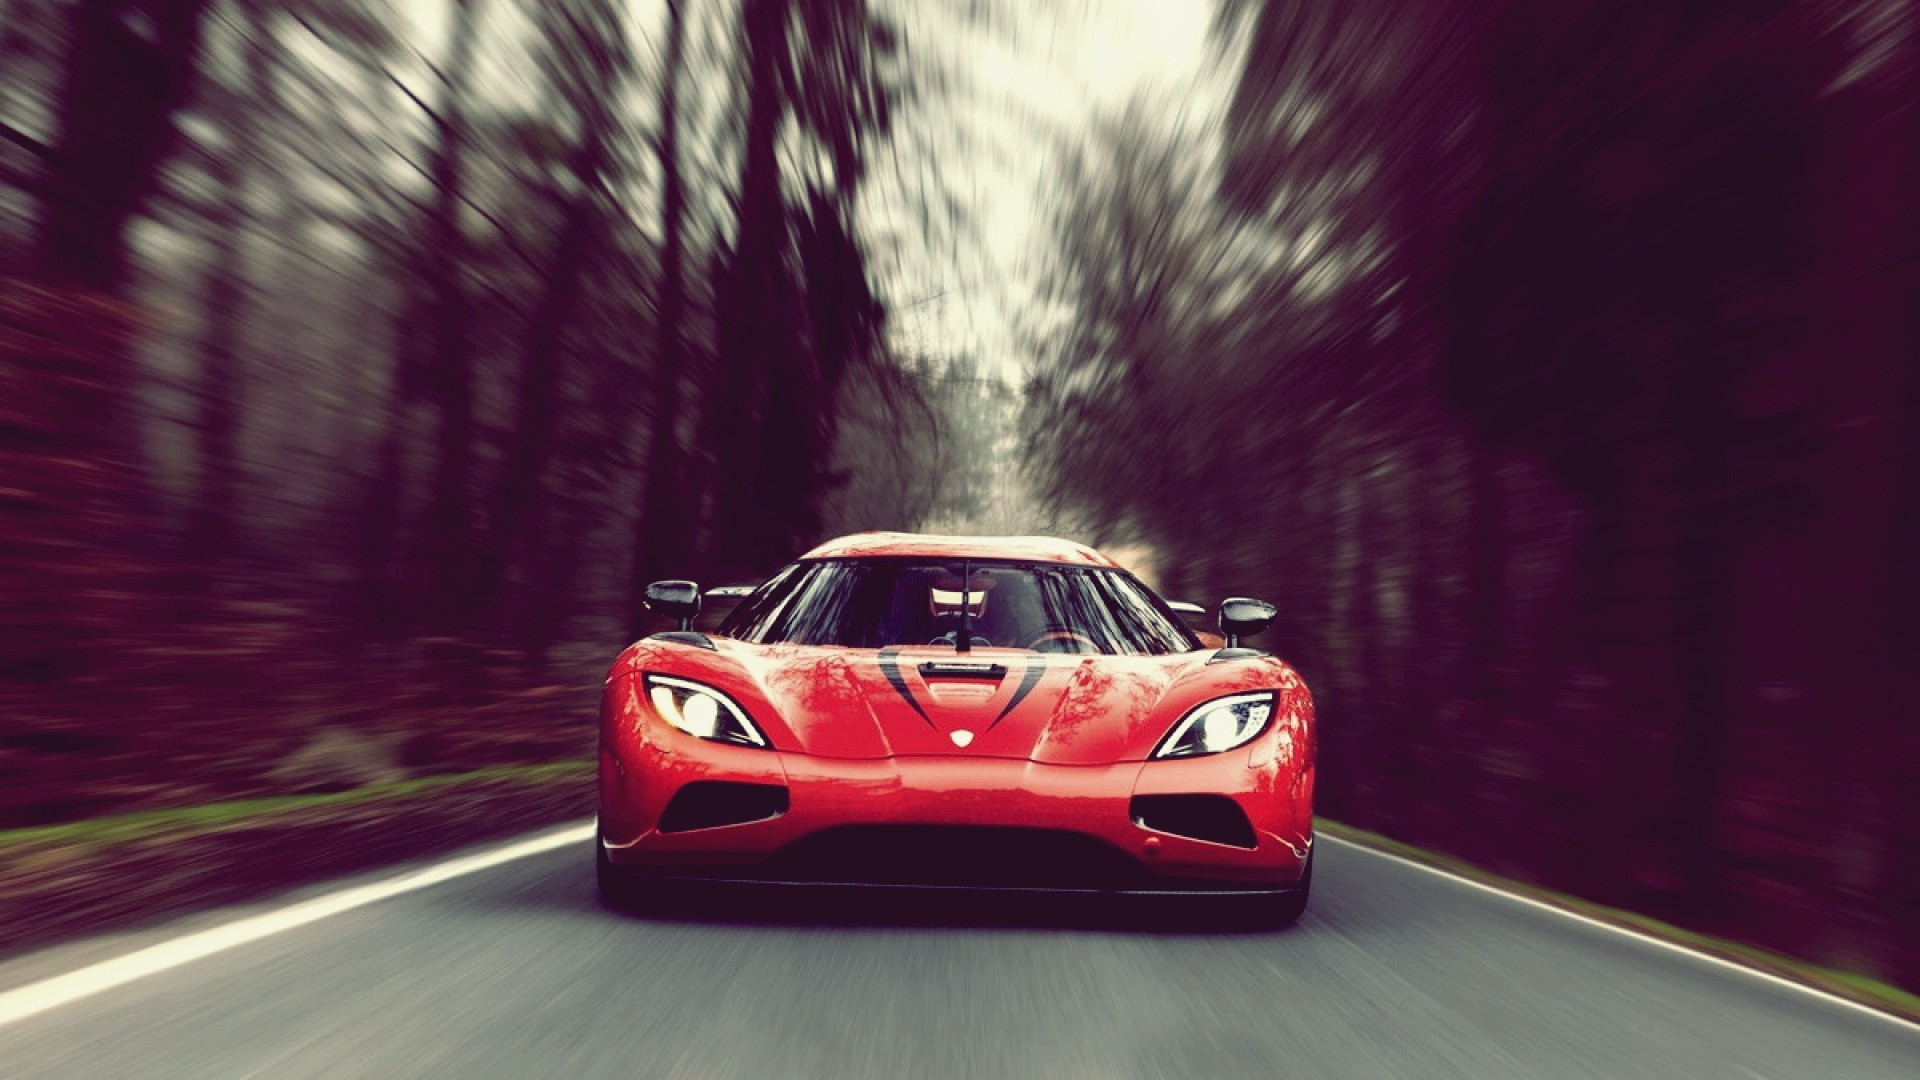 Koenigsegg Agera Hd Cars 4k Wallpapers Images Backgrounds